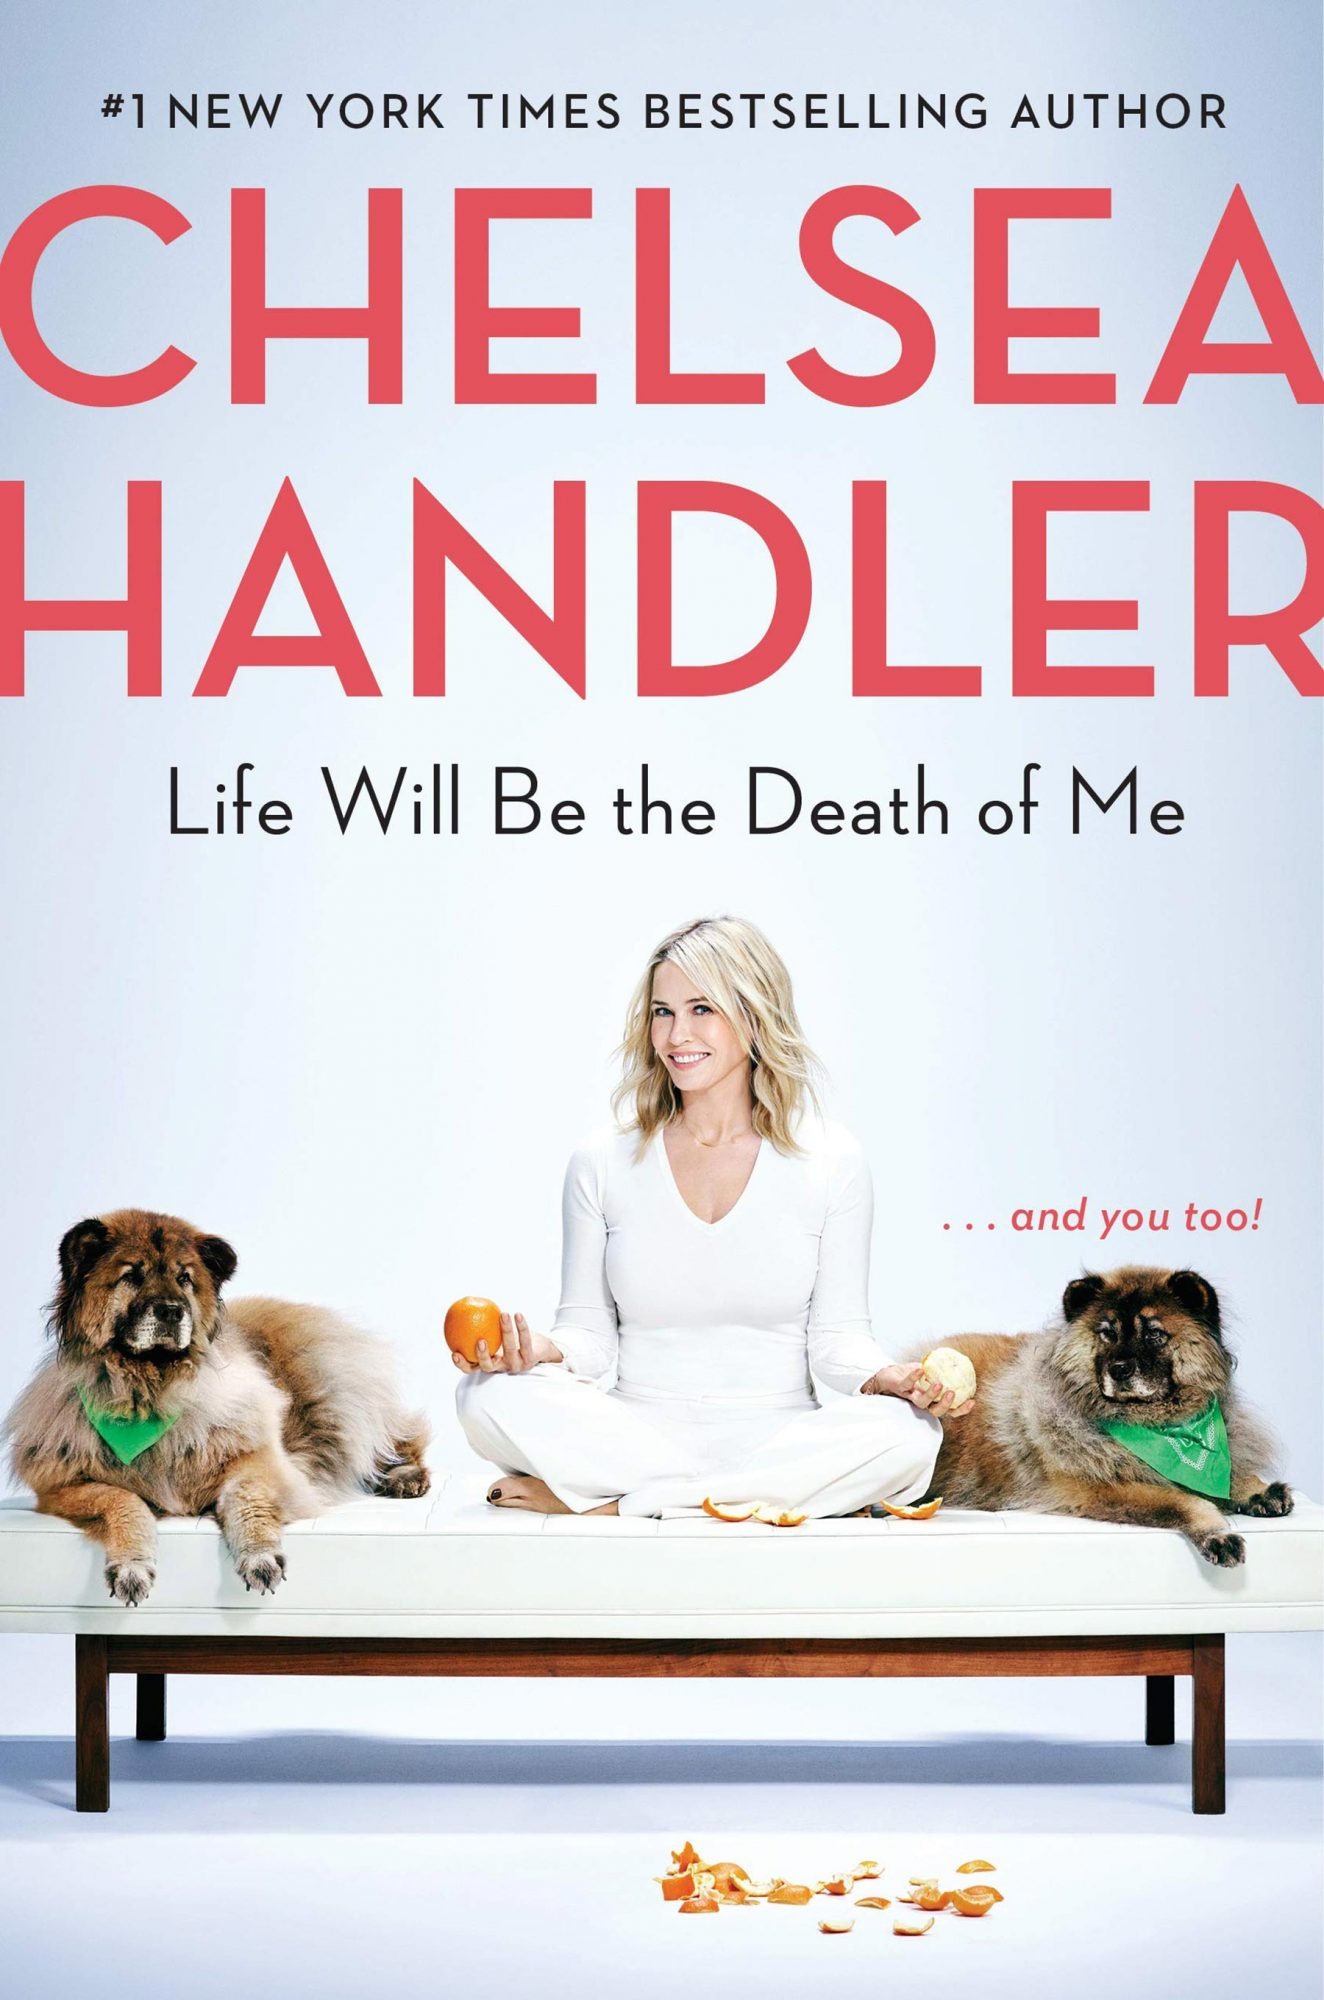 Life Will Be the Death of Me by Chelsea HandlerPublisher: Spiegel & Grau